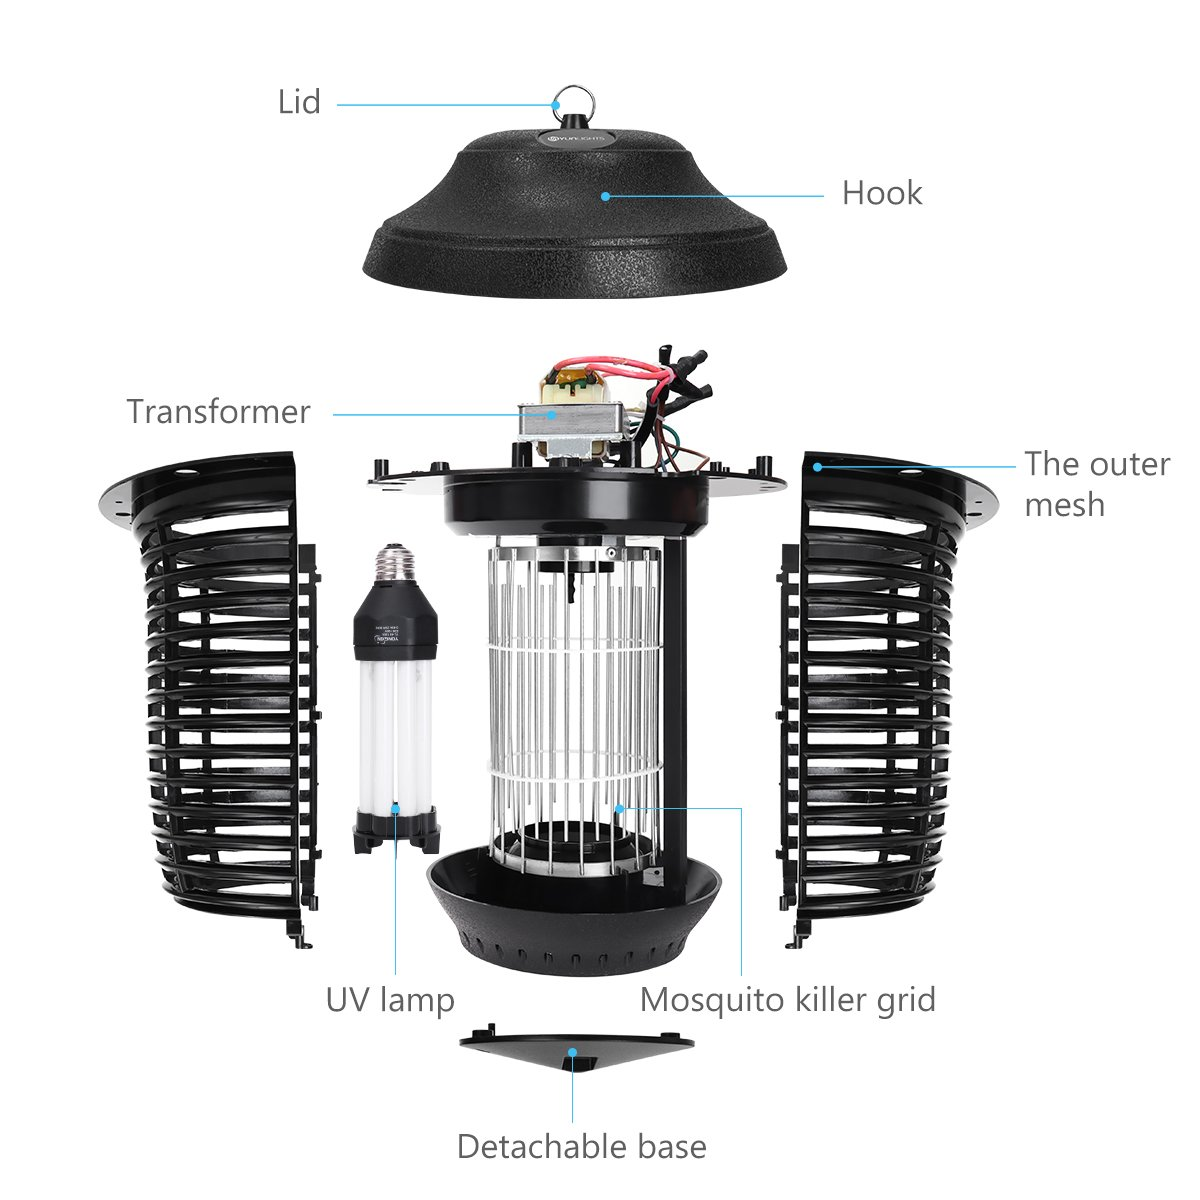 YUNLIGHTS Electric Bug Zapper, 40W Outdoor Mosquito Killer Lantern with Free Hanger, IPX4 Insect Fly Zapper Light for Patio, Gardens, Yards, Pool Area by YUNLIGHTS (Image #8)